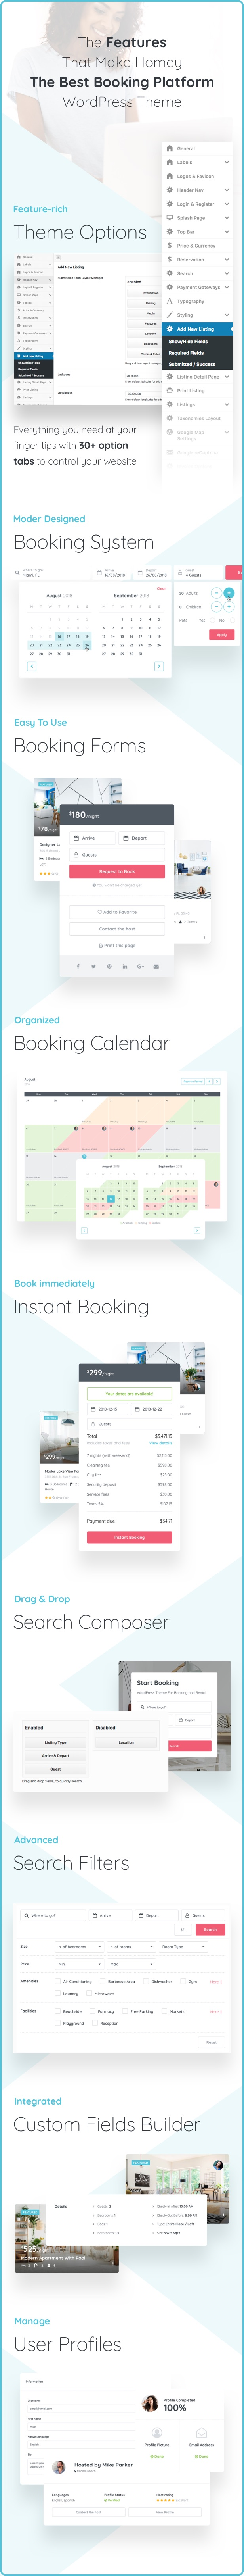 Homey - Booking and Rentals WordPress Theme - 7  Download Homey – Booking and Rentals WordPress Theme nulled features